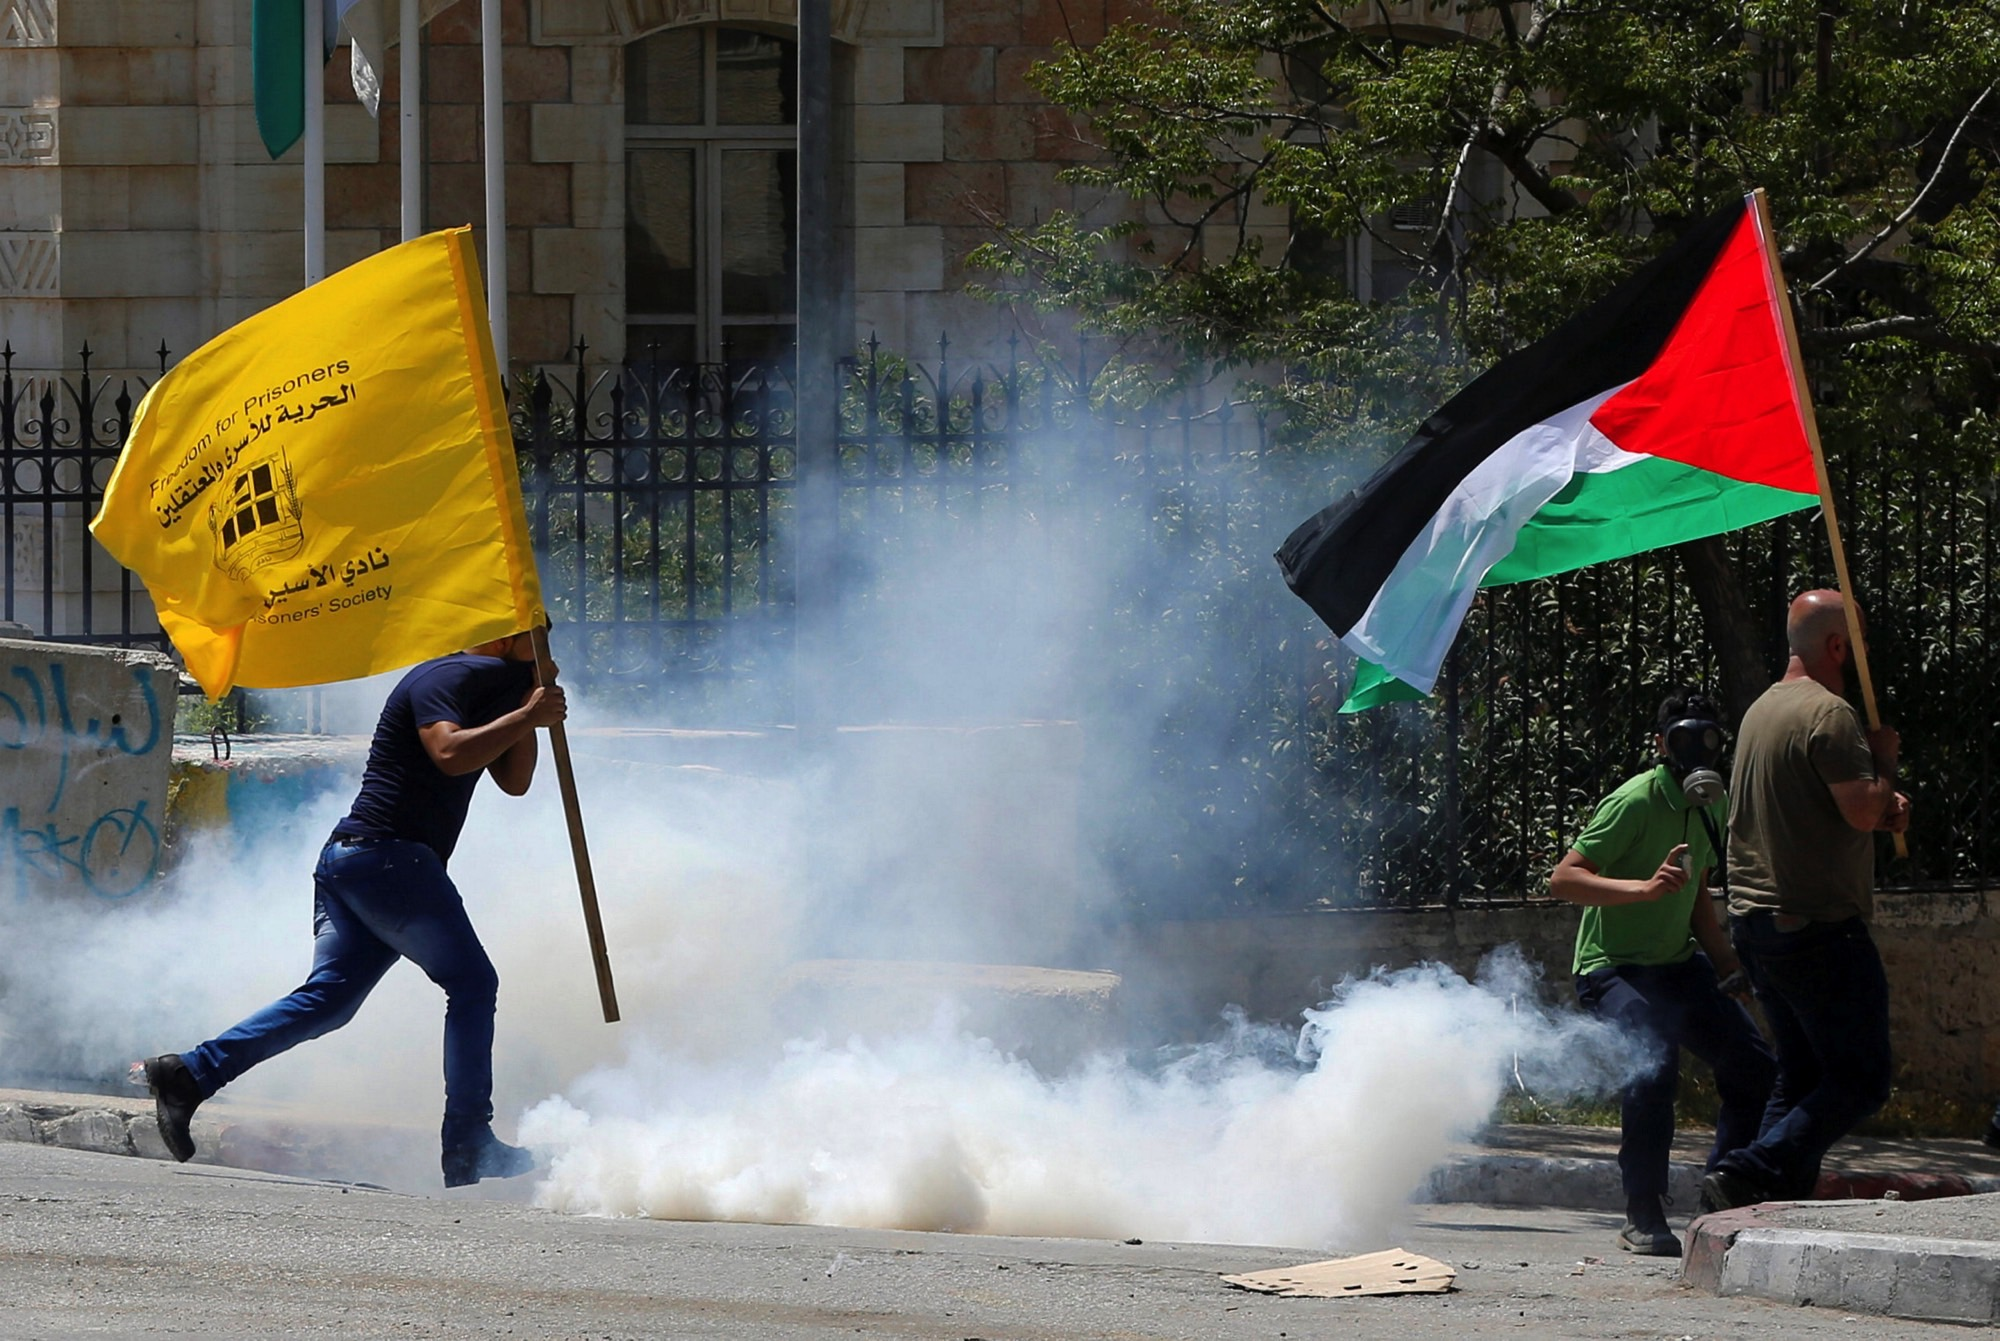 Palestinian protesters run for cover from tear gas canisters fired by Israeli troops during clashes following a protest in solidarity with Palestinian prisoners held by Israel, in the West Bank town of Bethlehem April 17, 2017. Credit: Reuters/Ammar Awad